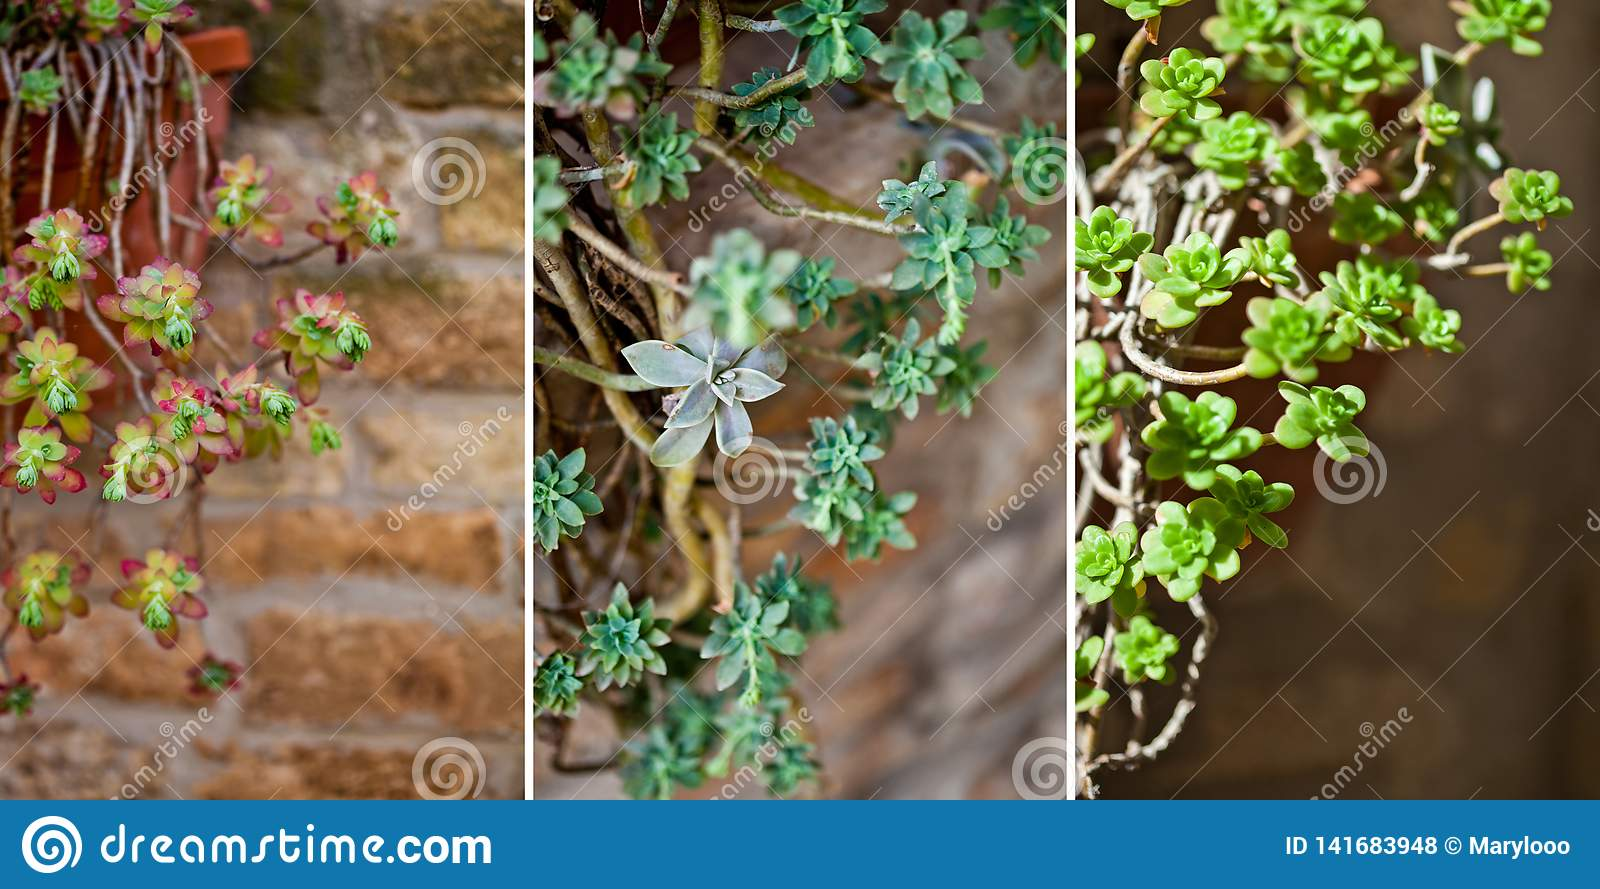 251 Hanging Succulents Photos Free Royalty Free Stock Photos From Dreamstime